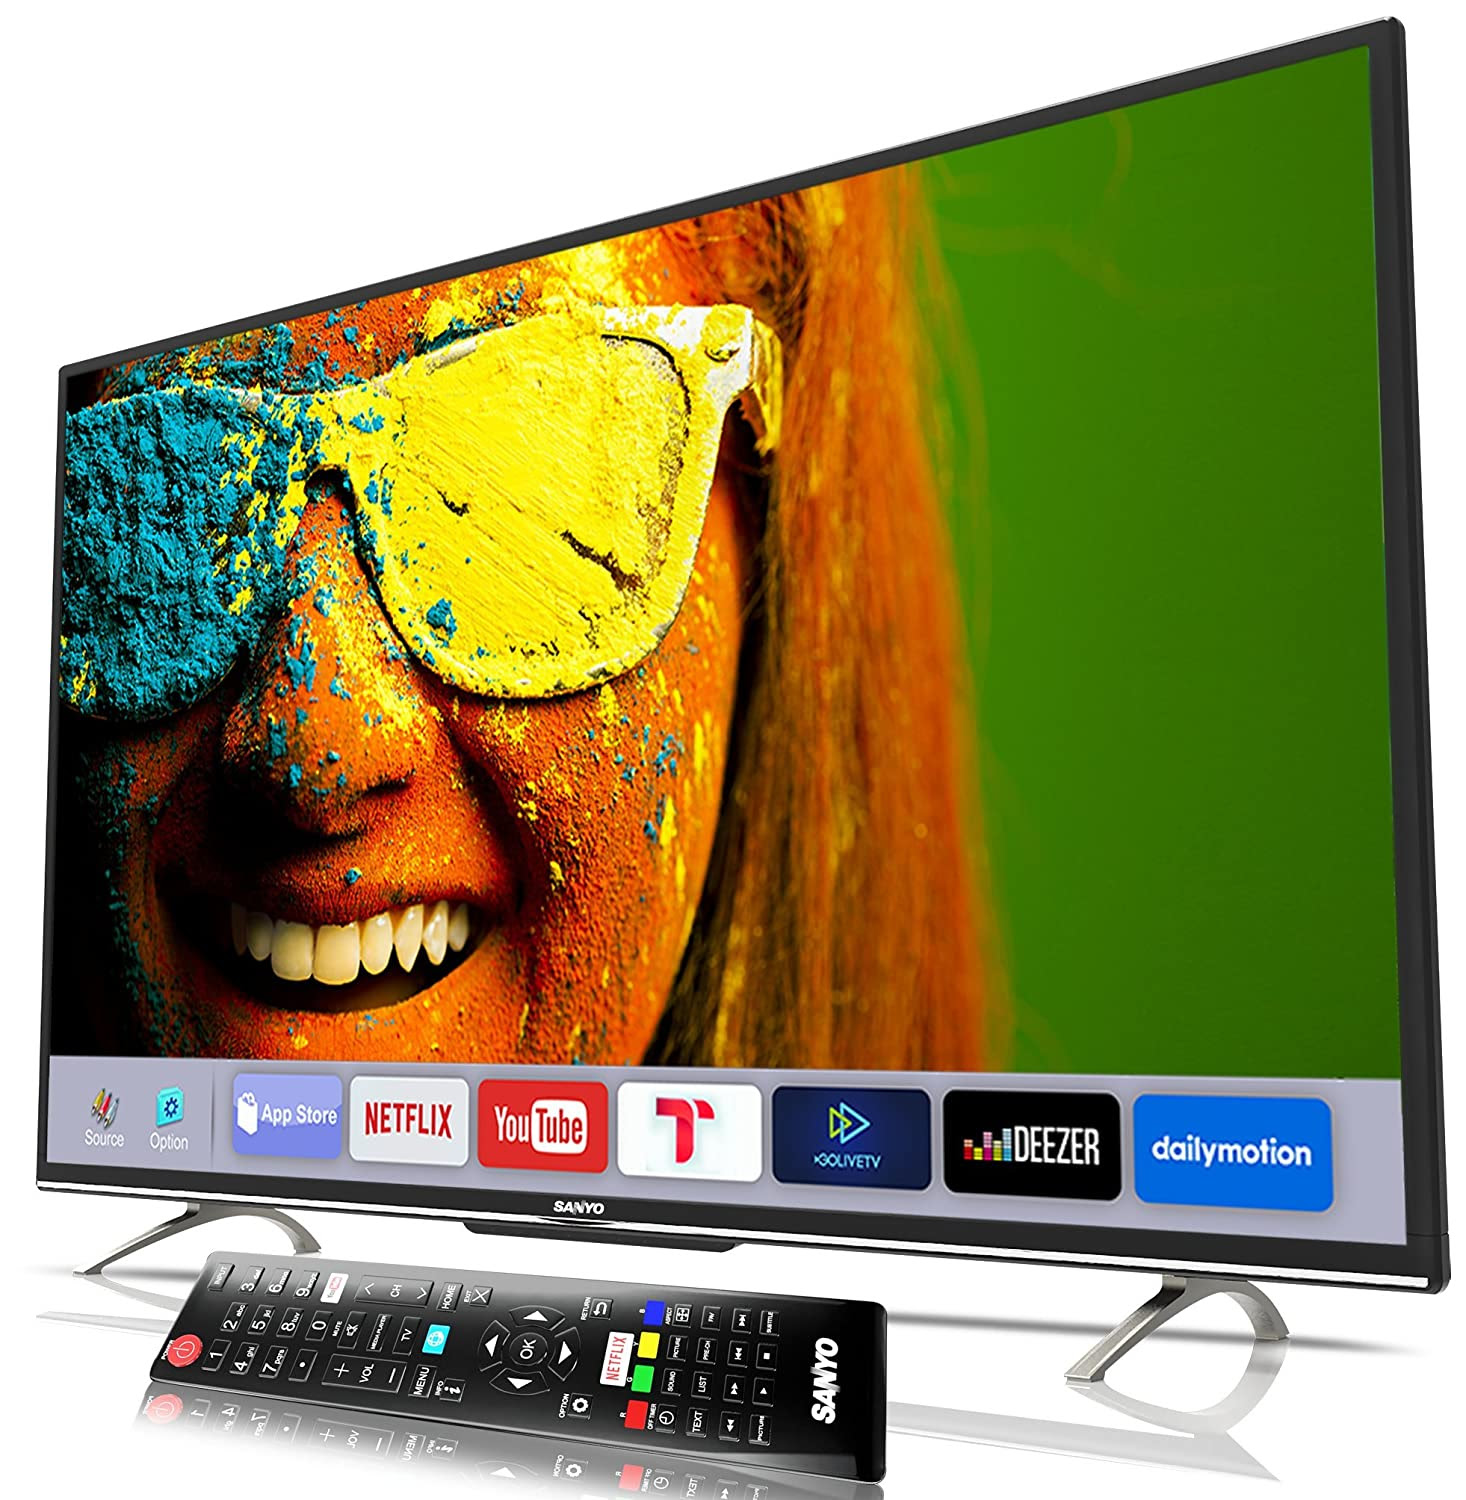 Deals on Sanyo (43 inch) Full HD IPS Smart LED TV